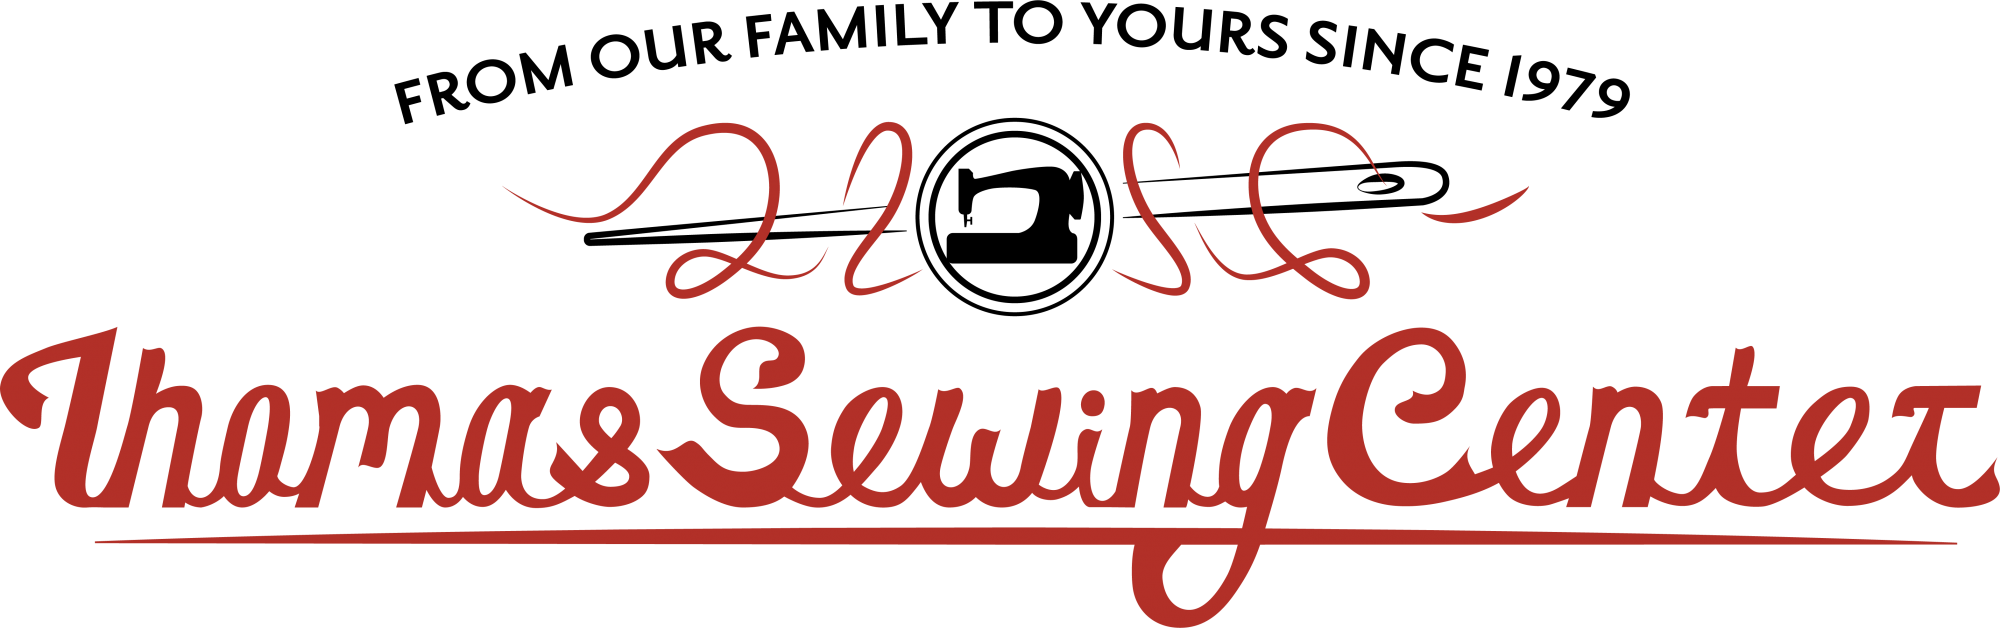 Thomas Sewing Center